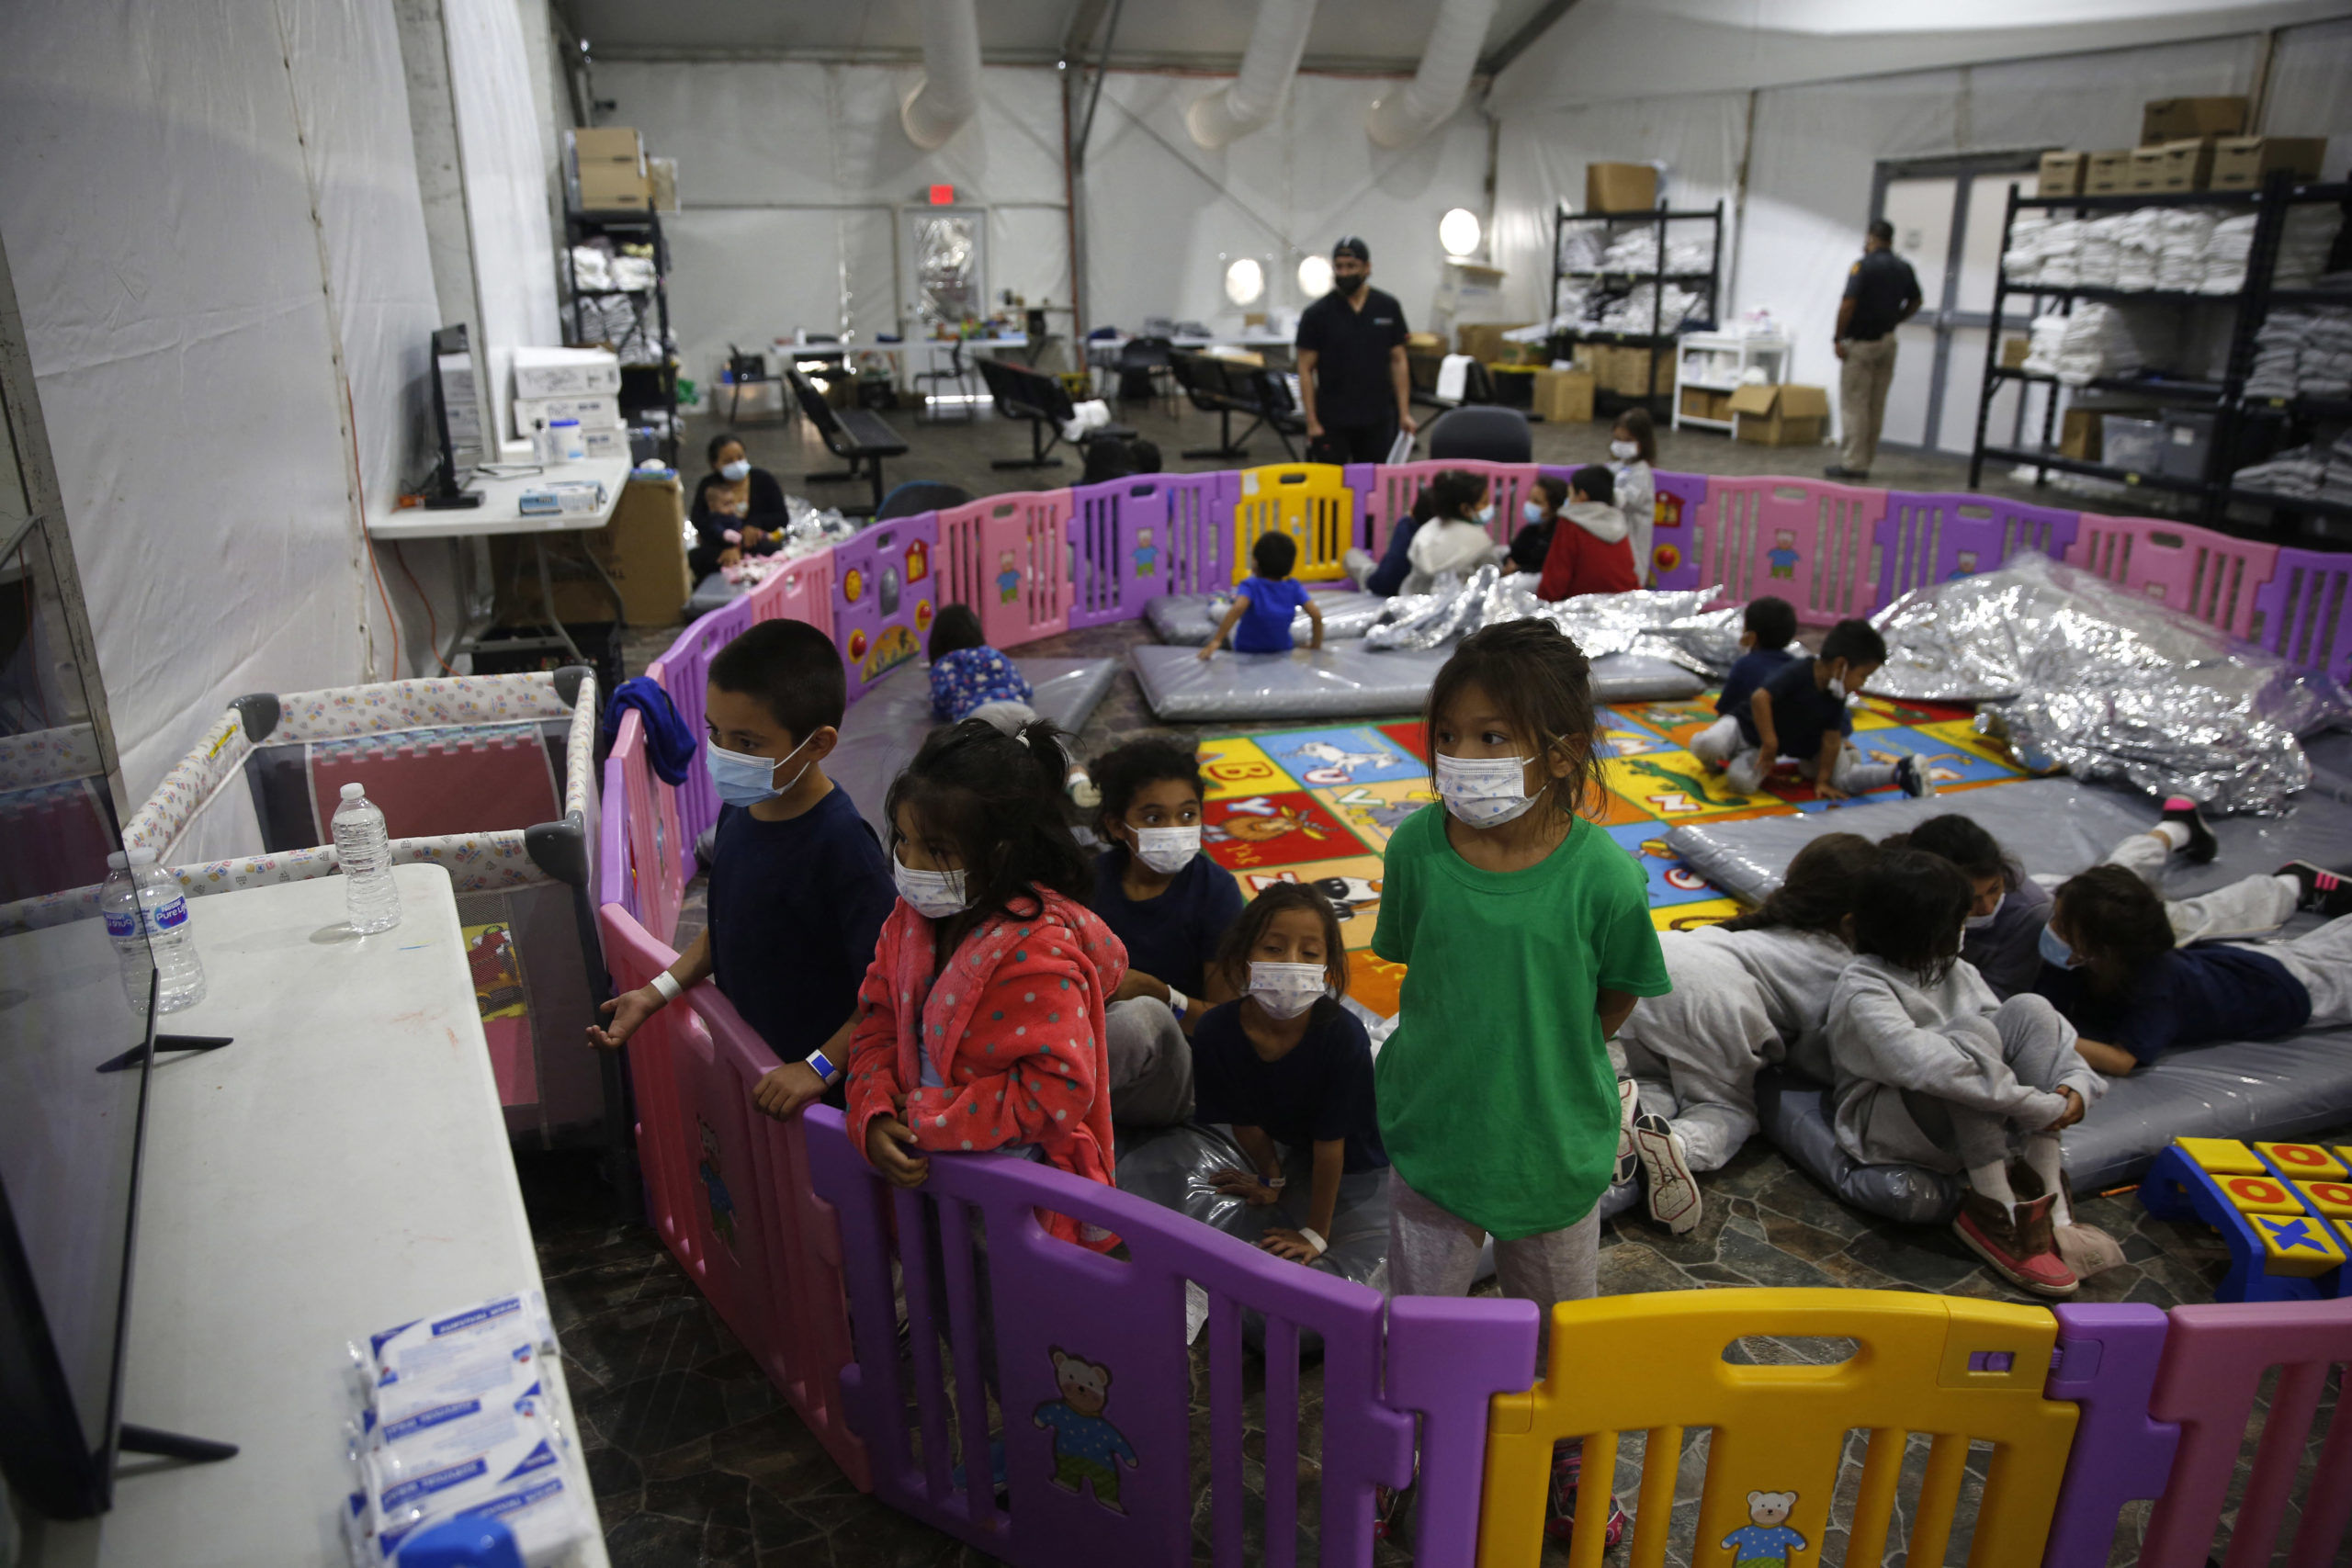 Young unaccompanied migrants, ages 3-9 watch TV inside a playpen at the Donna Department of Homeland Security holding facility (Photo by DARIO LOPEZ-MILLS/POOL/AFP via Getty Images)